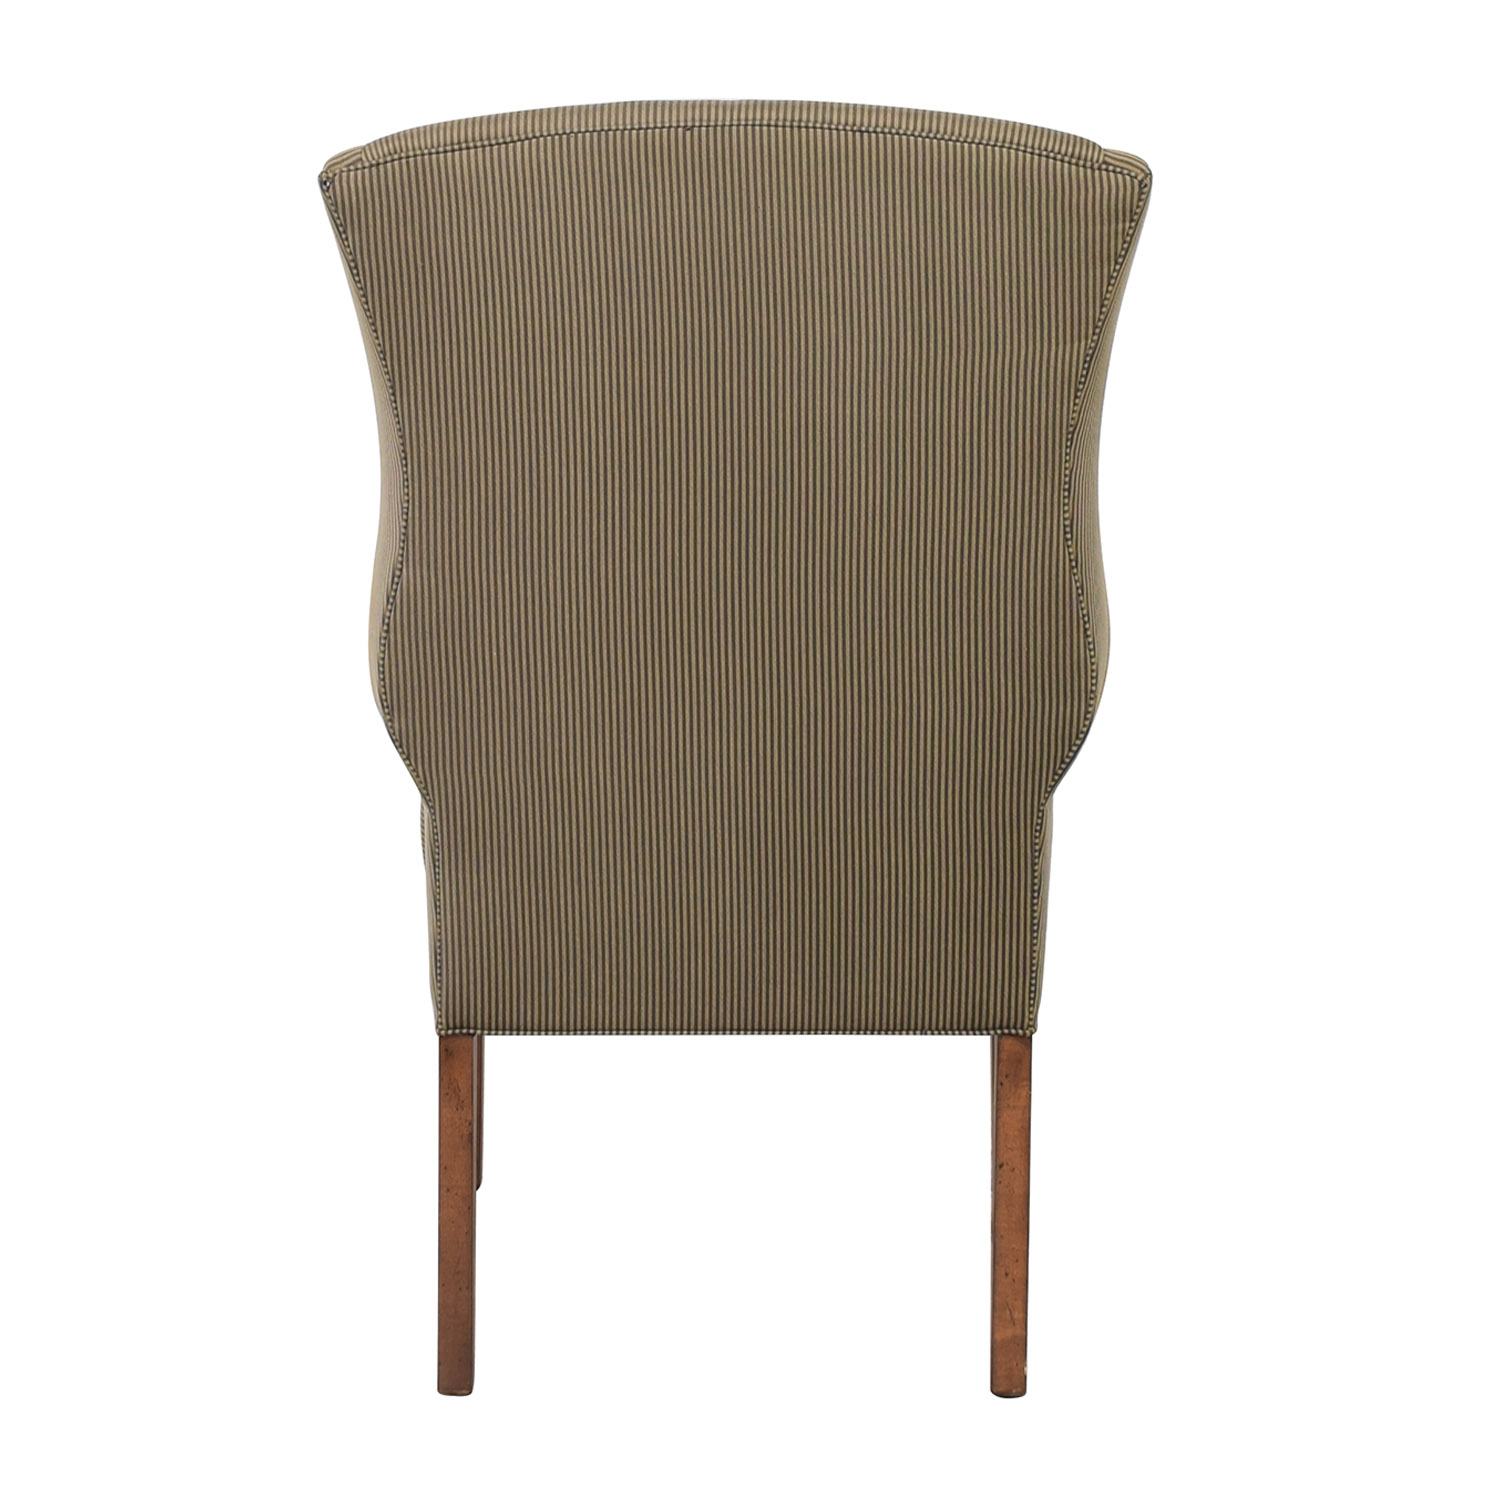 Ethan Allen Skylar Wing Chair / Accent Chairs